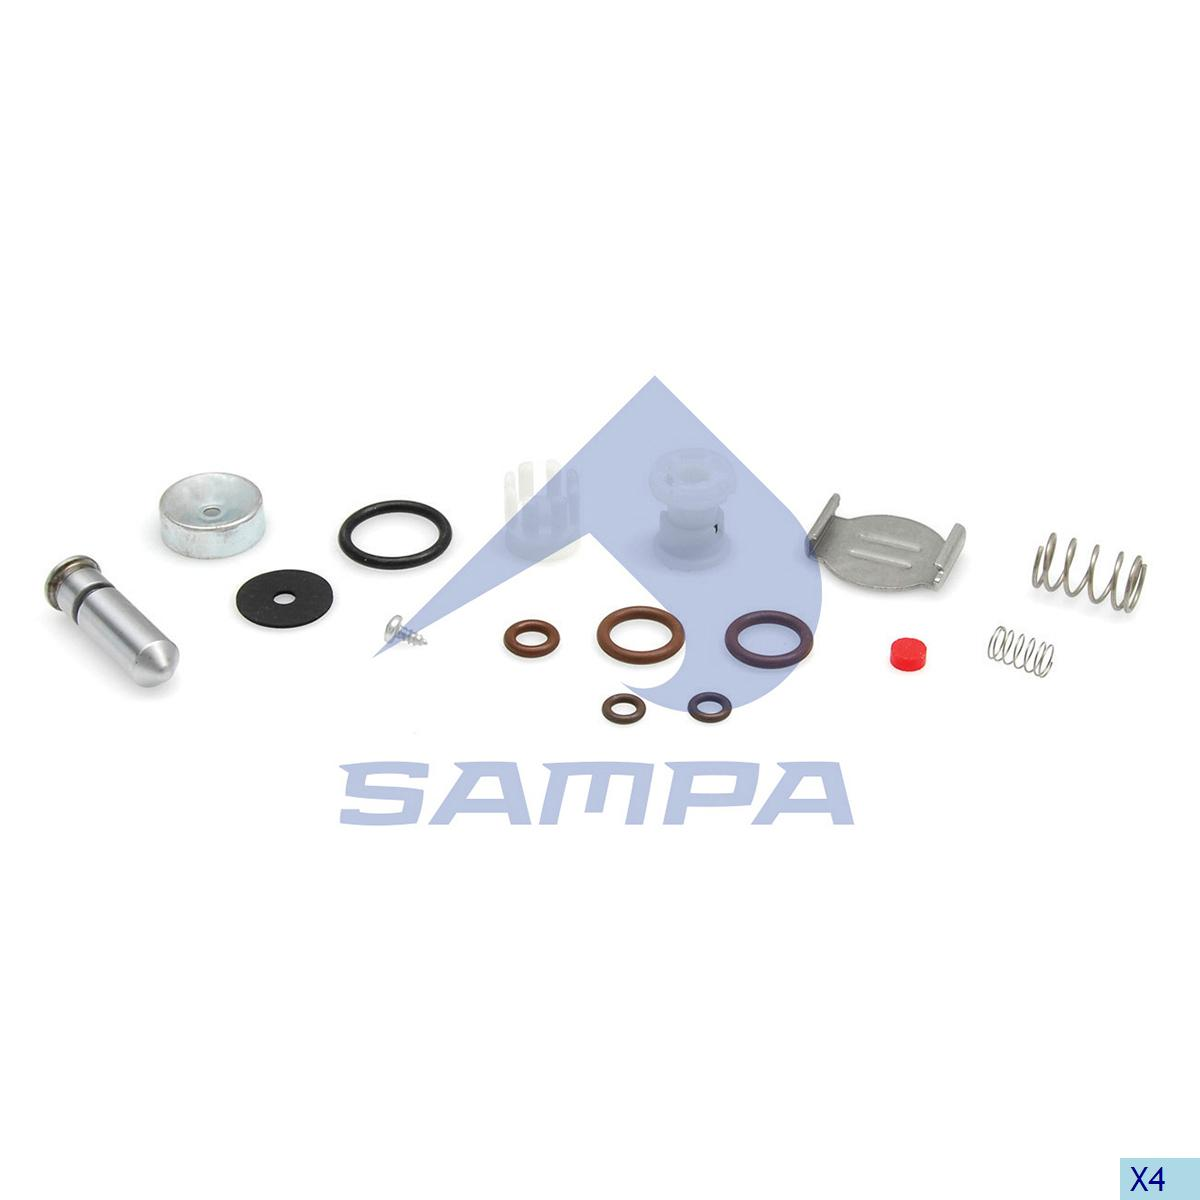 Repair Kit, Gear Shifting, R.V.I., Gear Box